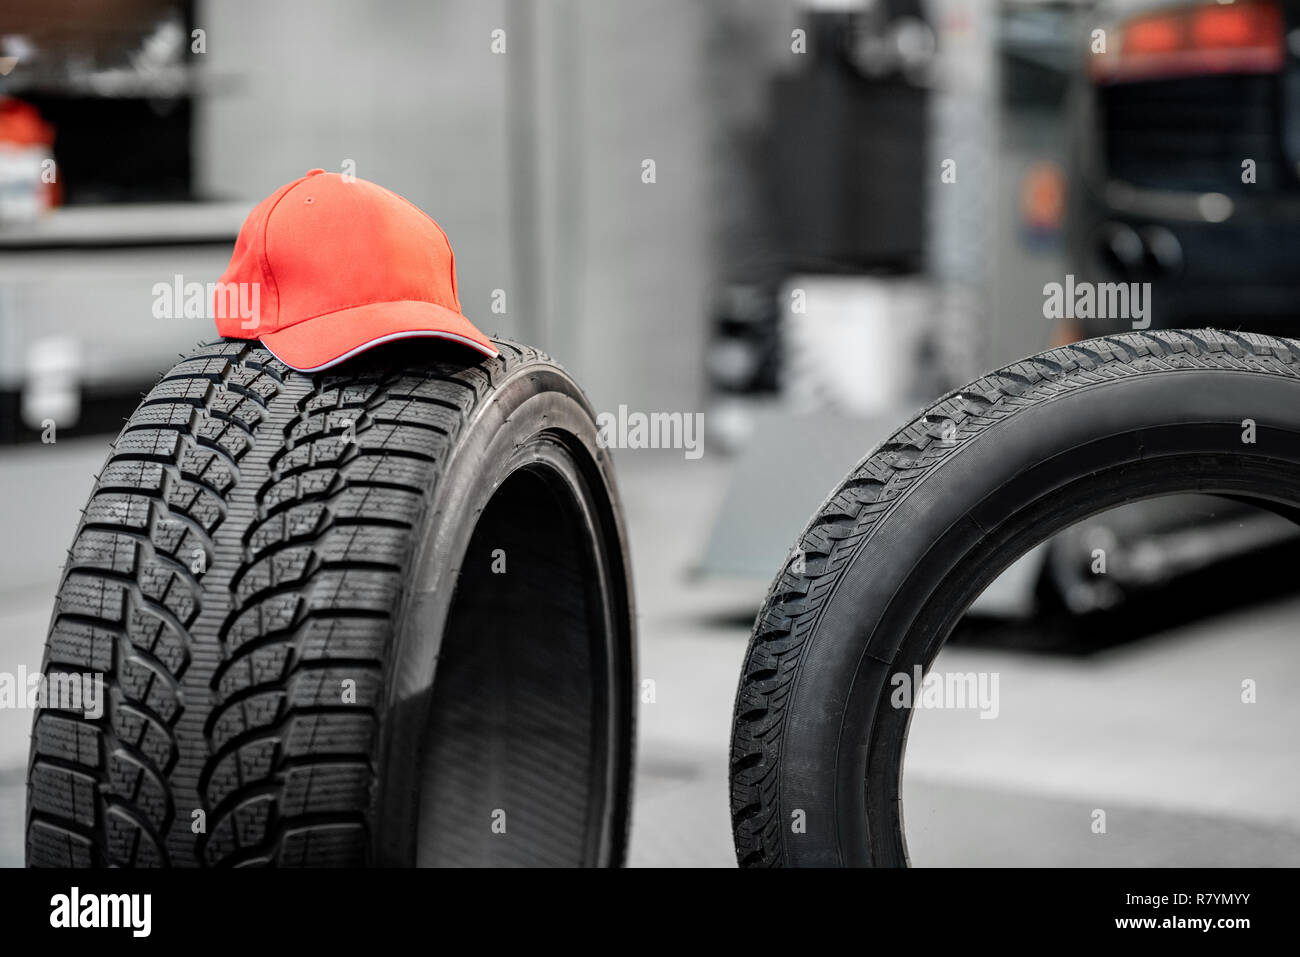 Red Cap On The Tire At The Wheel Mounting Service Stock Photo